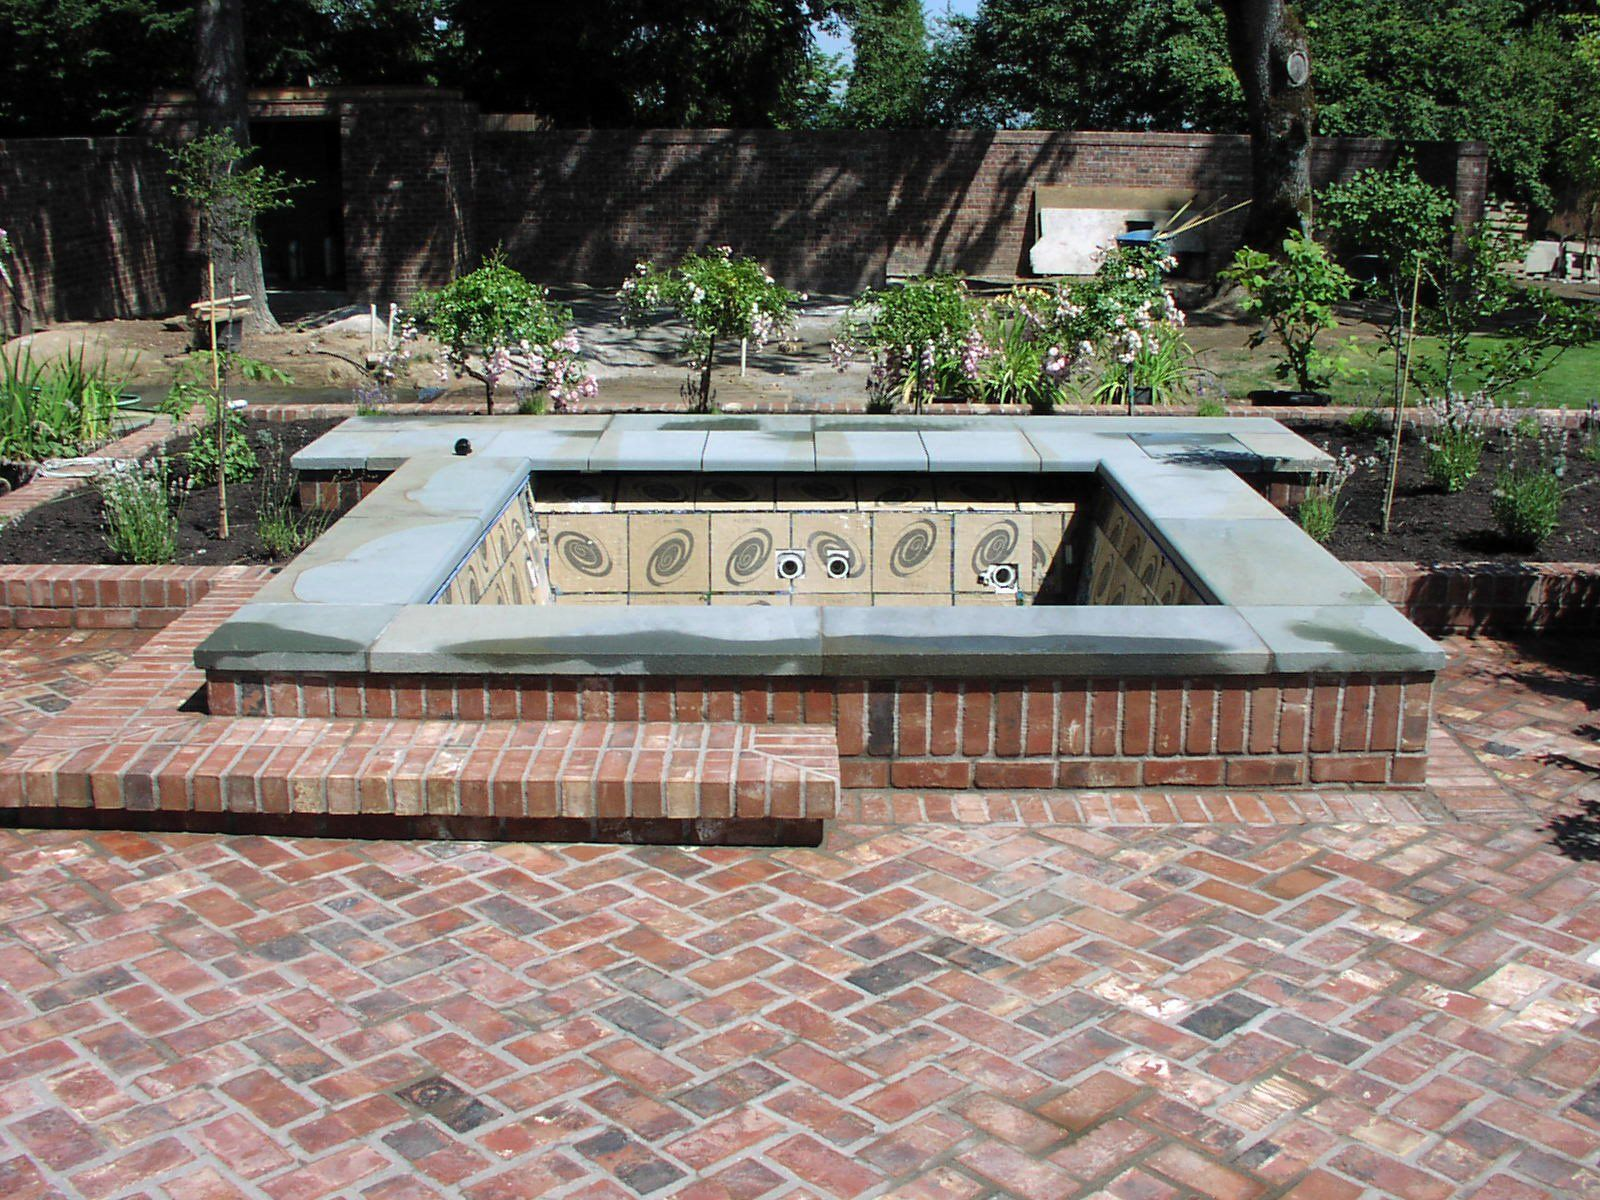 Www.loversiq.com Daut As F T Terrace Exterior Red Brick Patio  Patterns Ideas Floor  With Square Interesting For Your Outdoor_brick And Wood Patio Idu2026